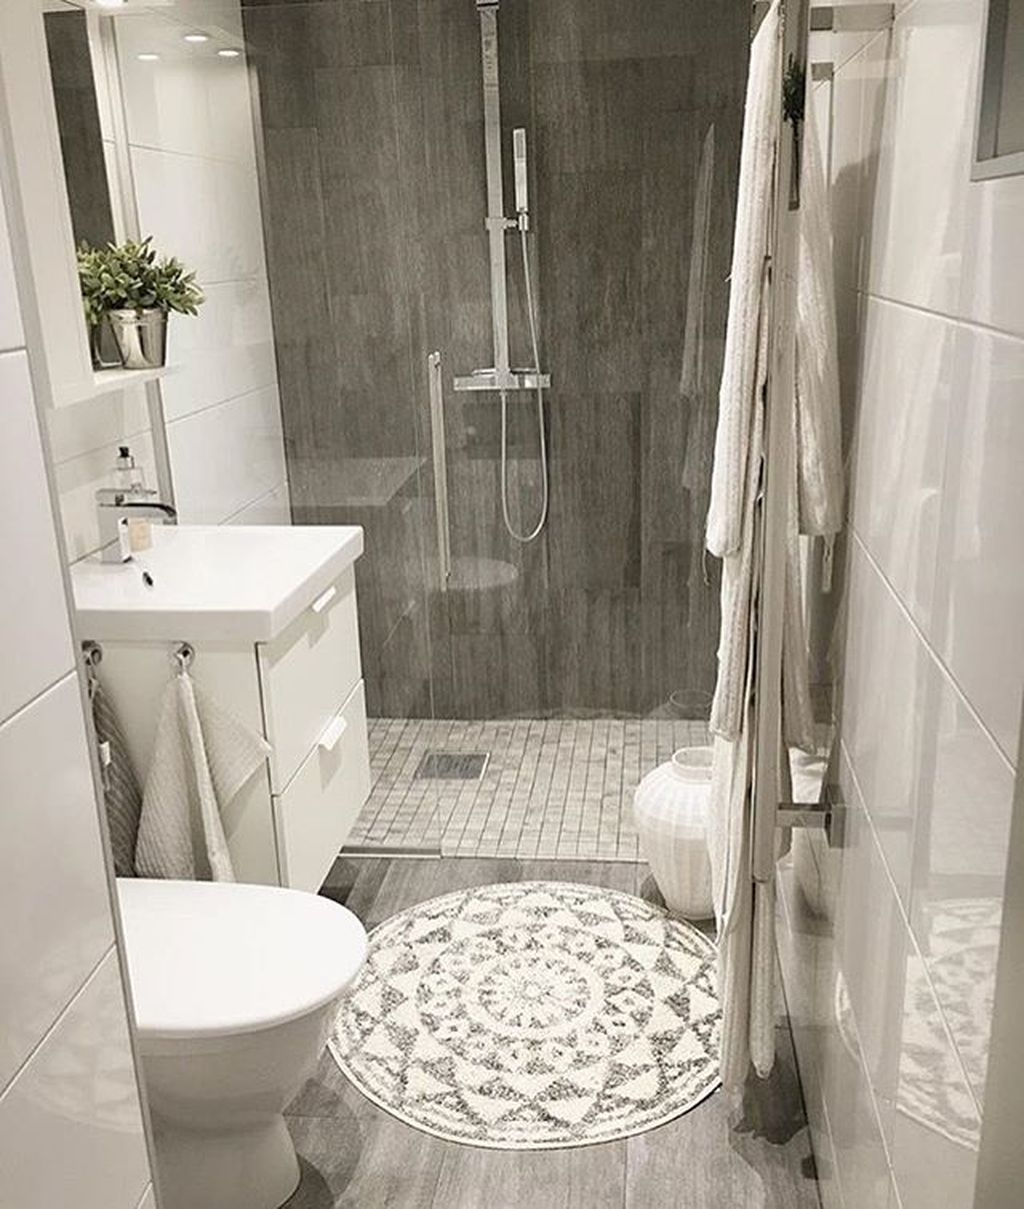 39 cool and stylish small bathroom design ideas homedecorish - How to layout a bathroom remodel ...